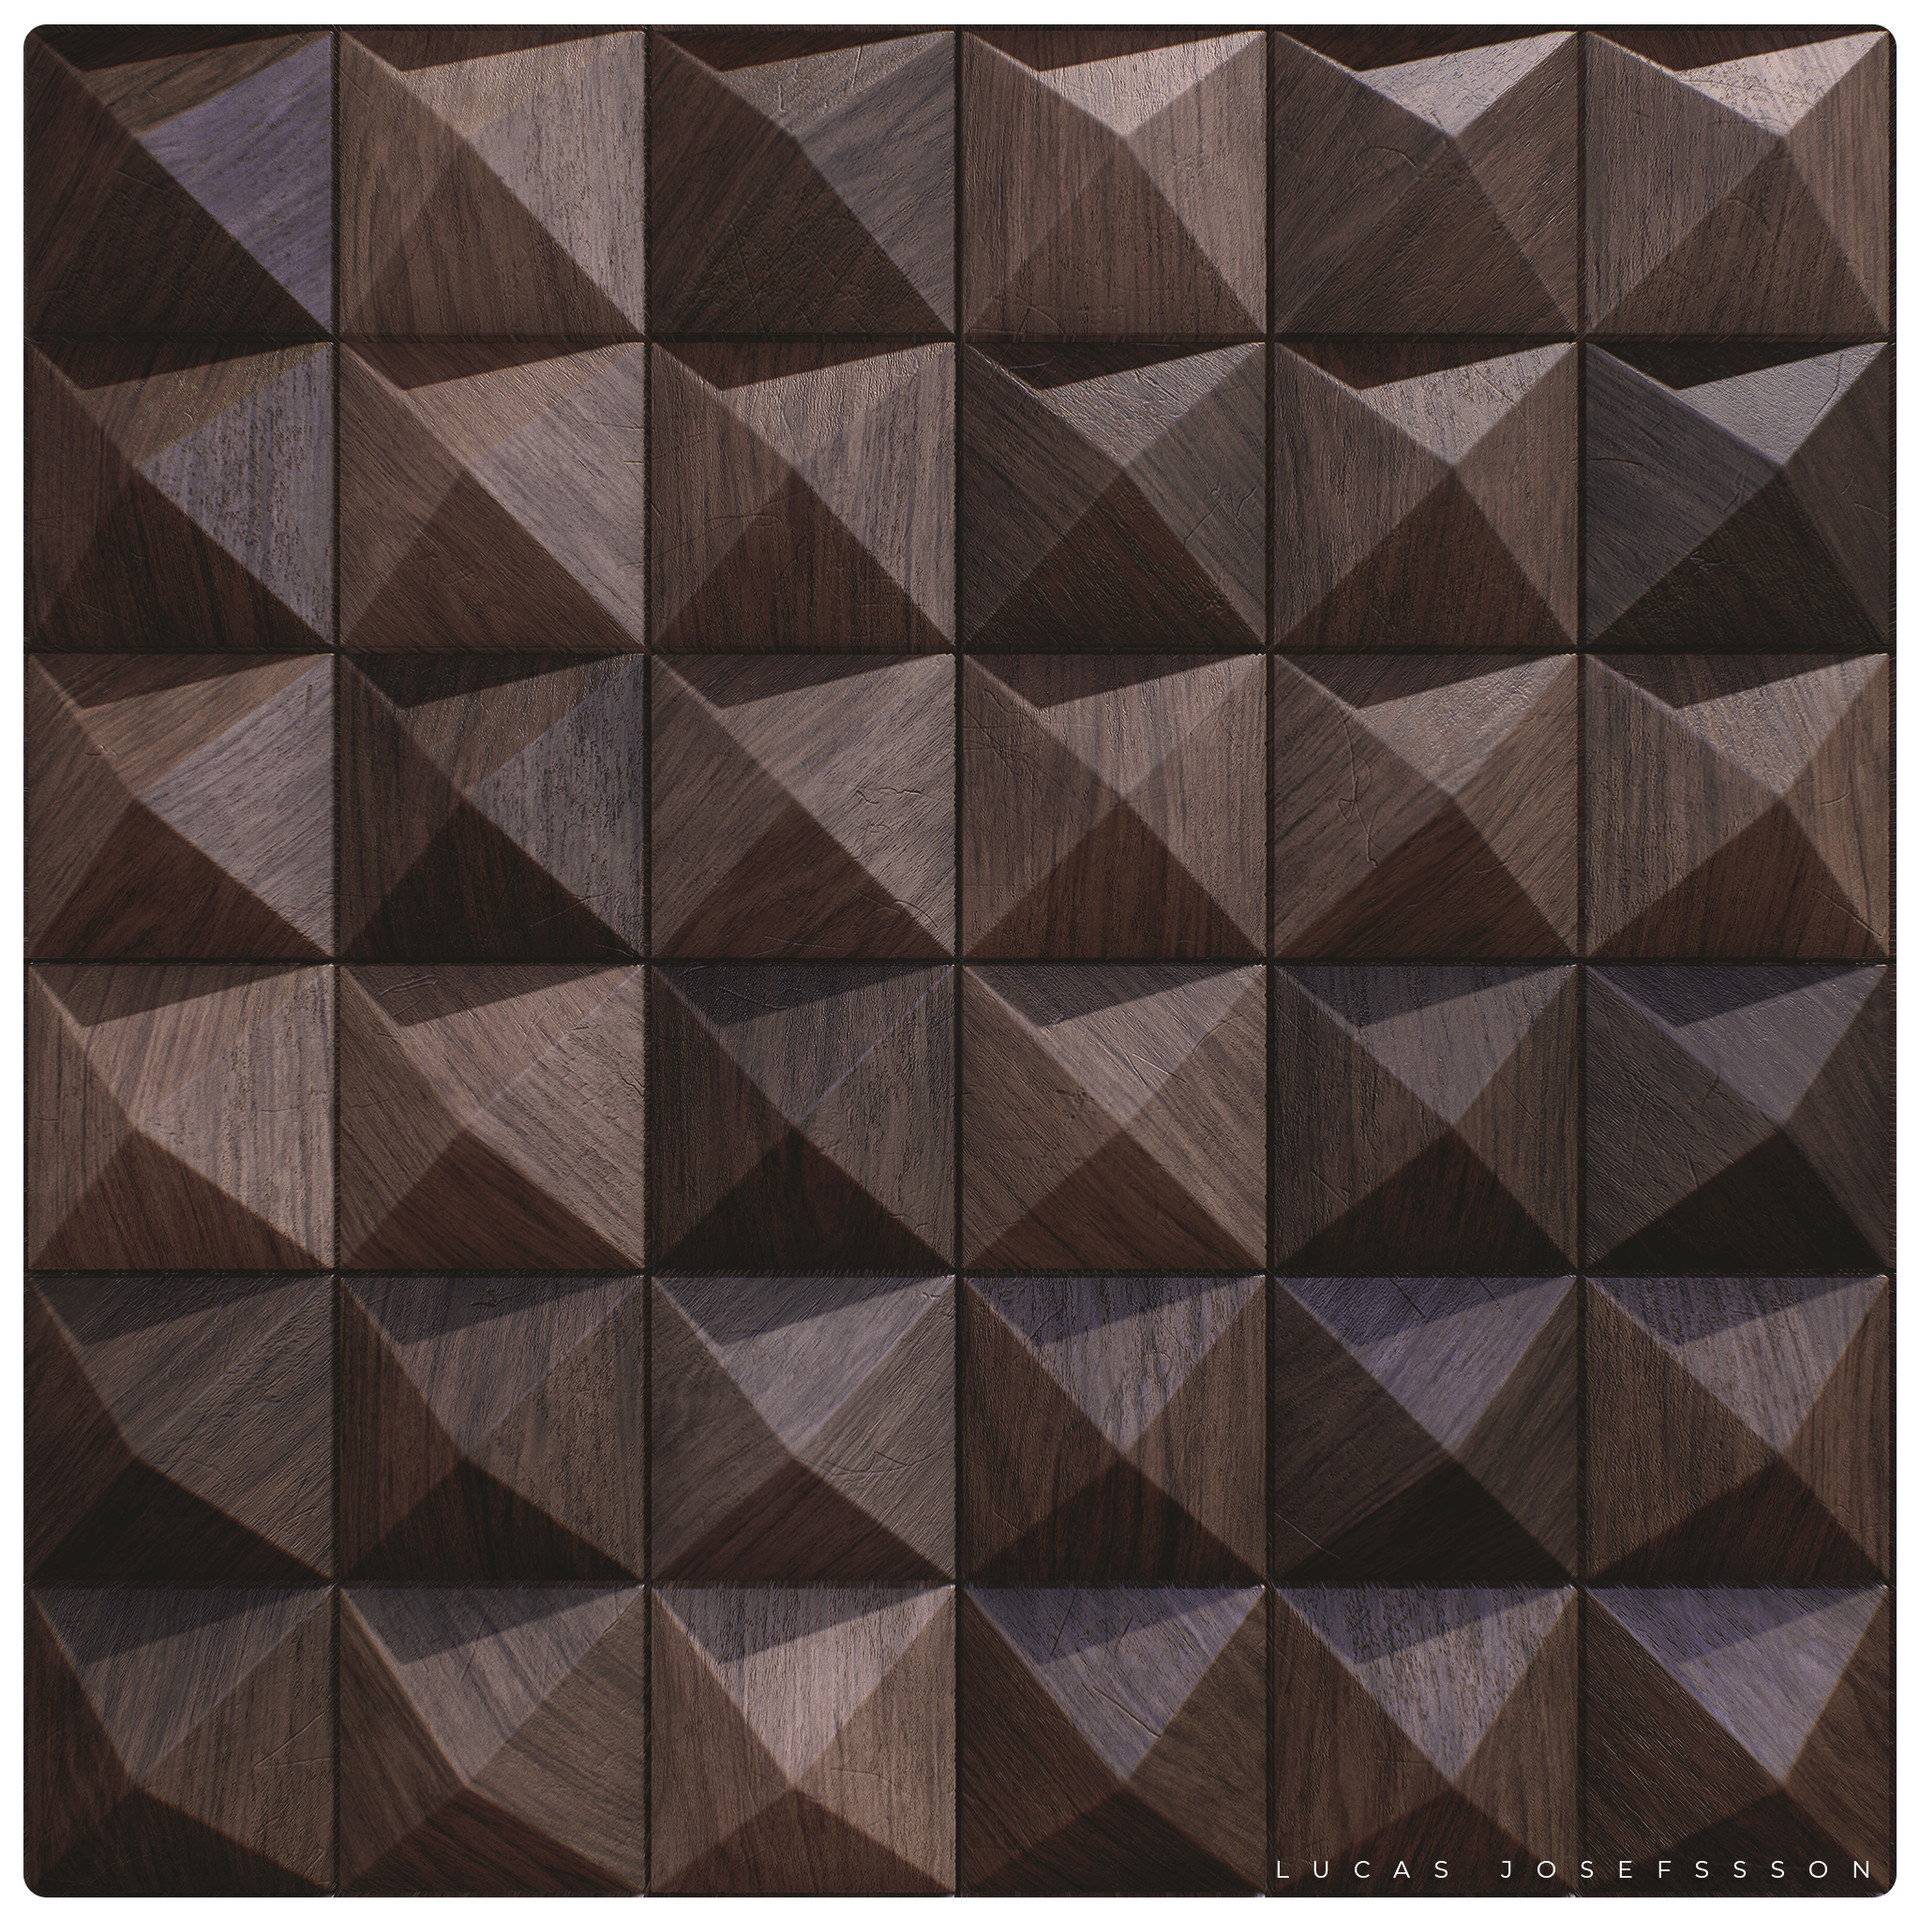 Lucas josefsson wood patterns 03